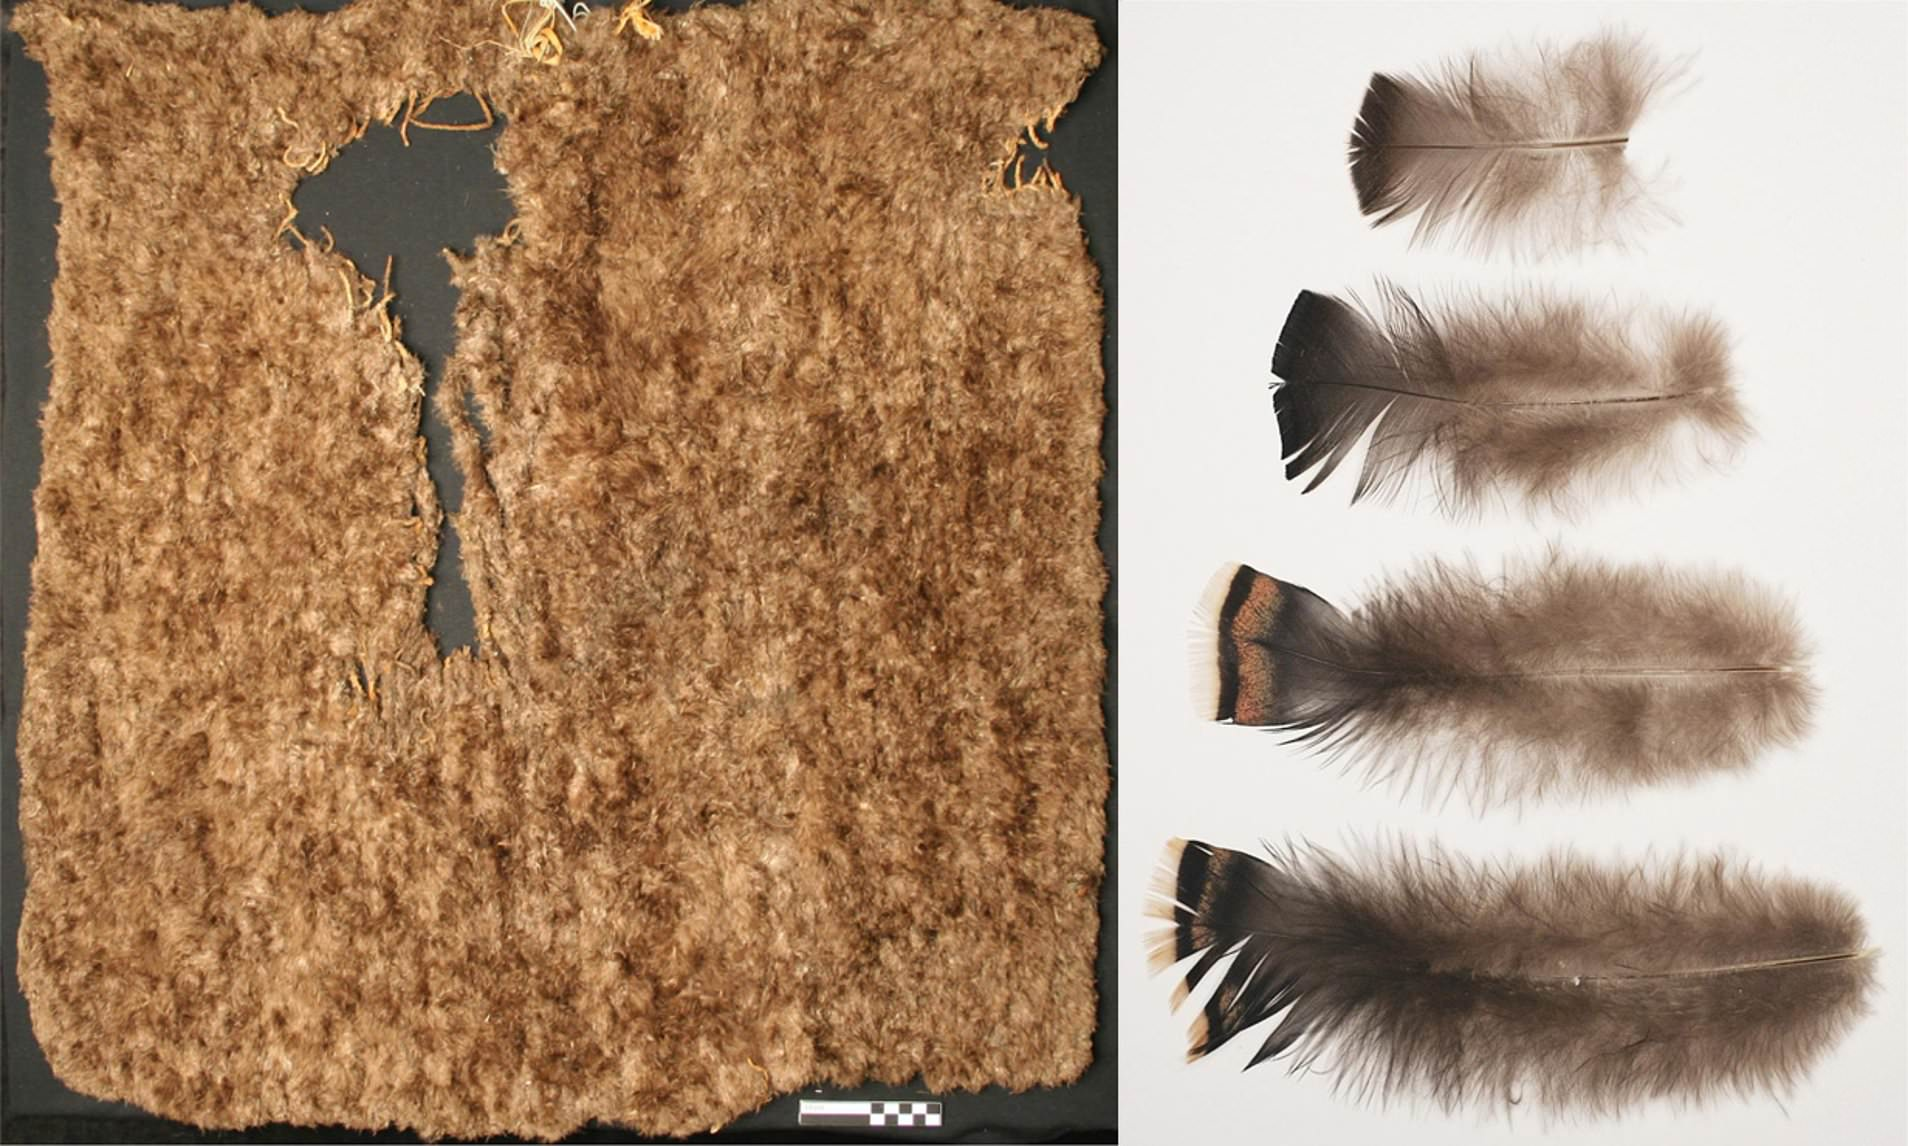 800-year-old Pueblo Indian blanket made out of 11,500 turkey feathers